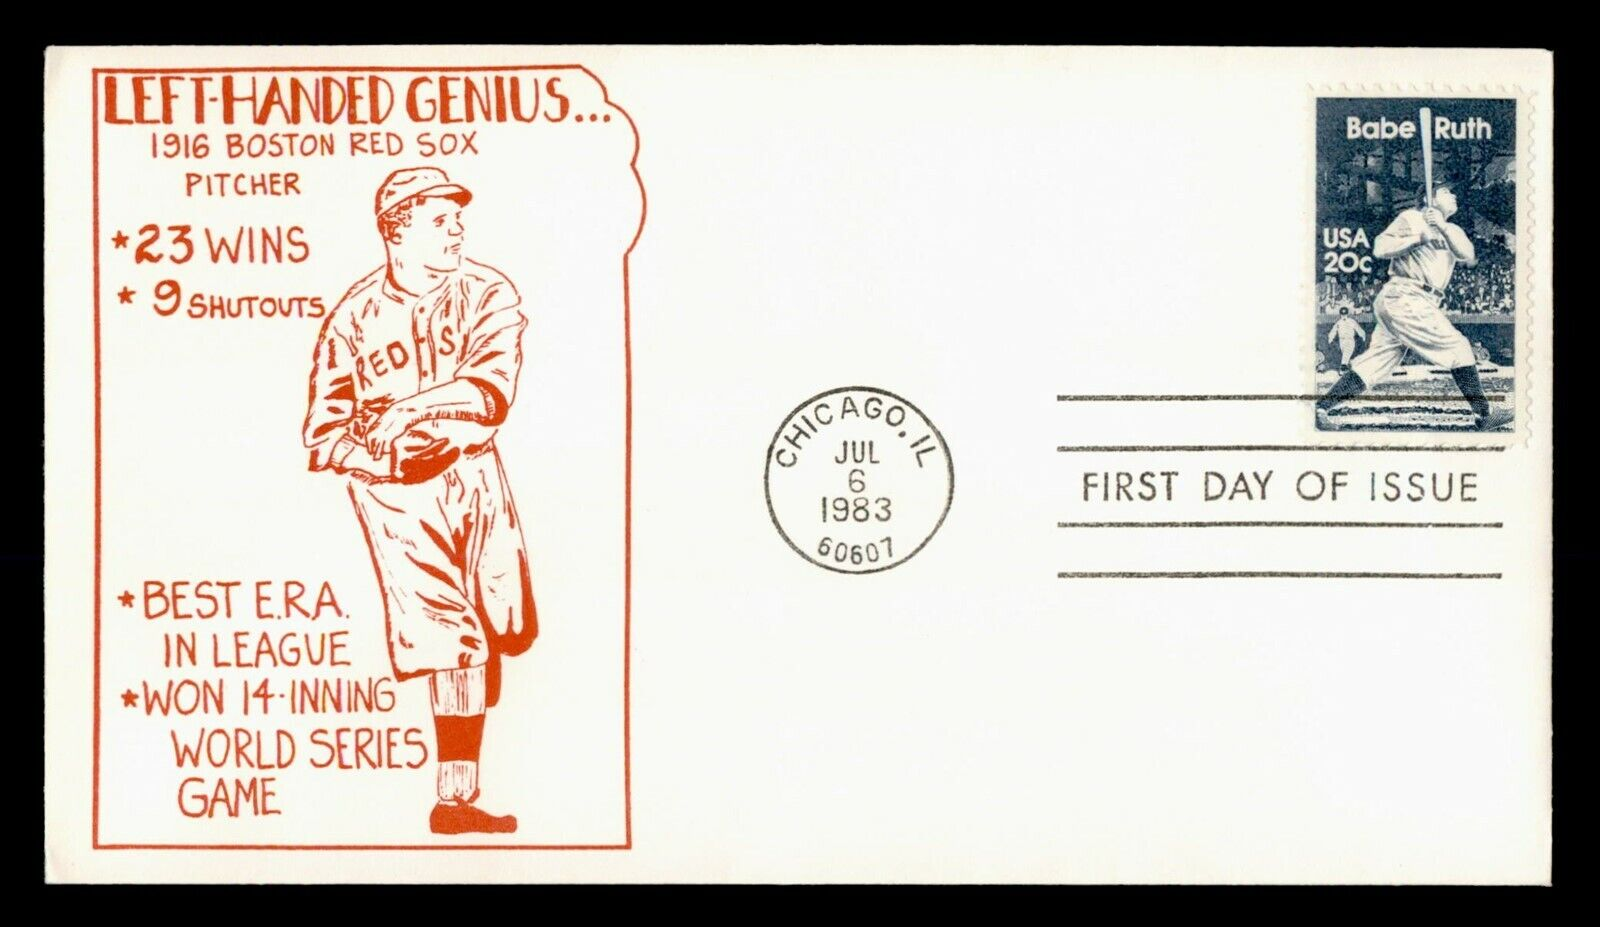 DR WHO 1983 FDC BABE RUTH BASEBALL PLAYER C218649 - $0.50